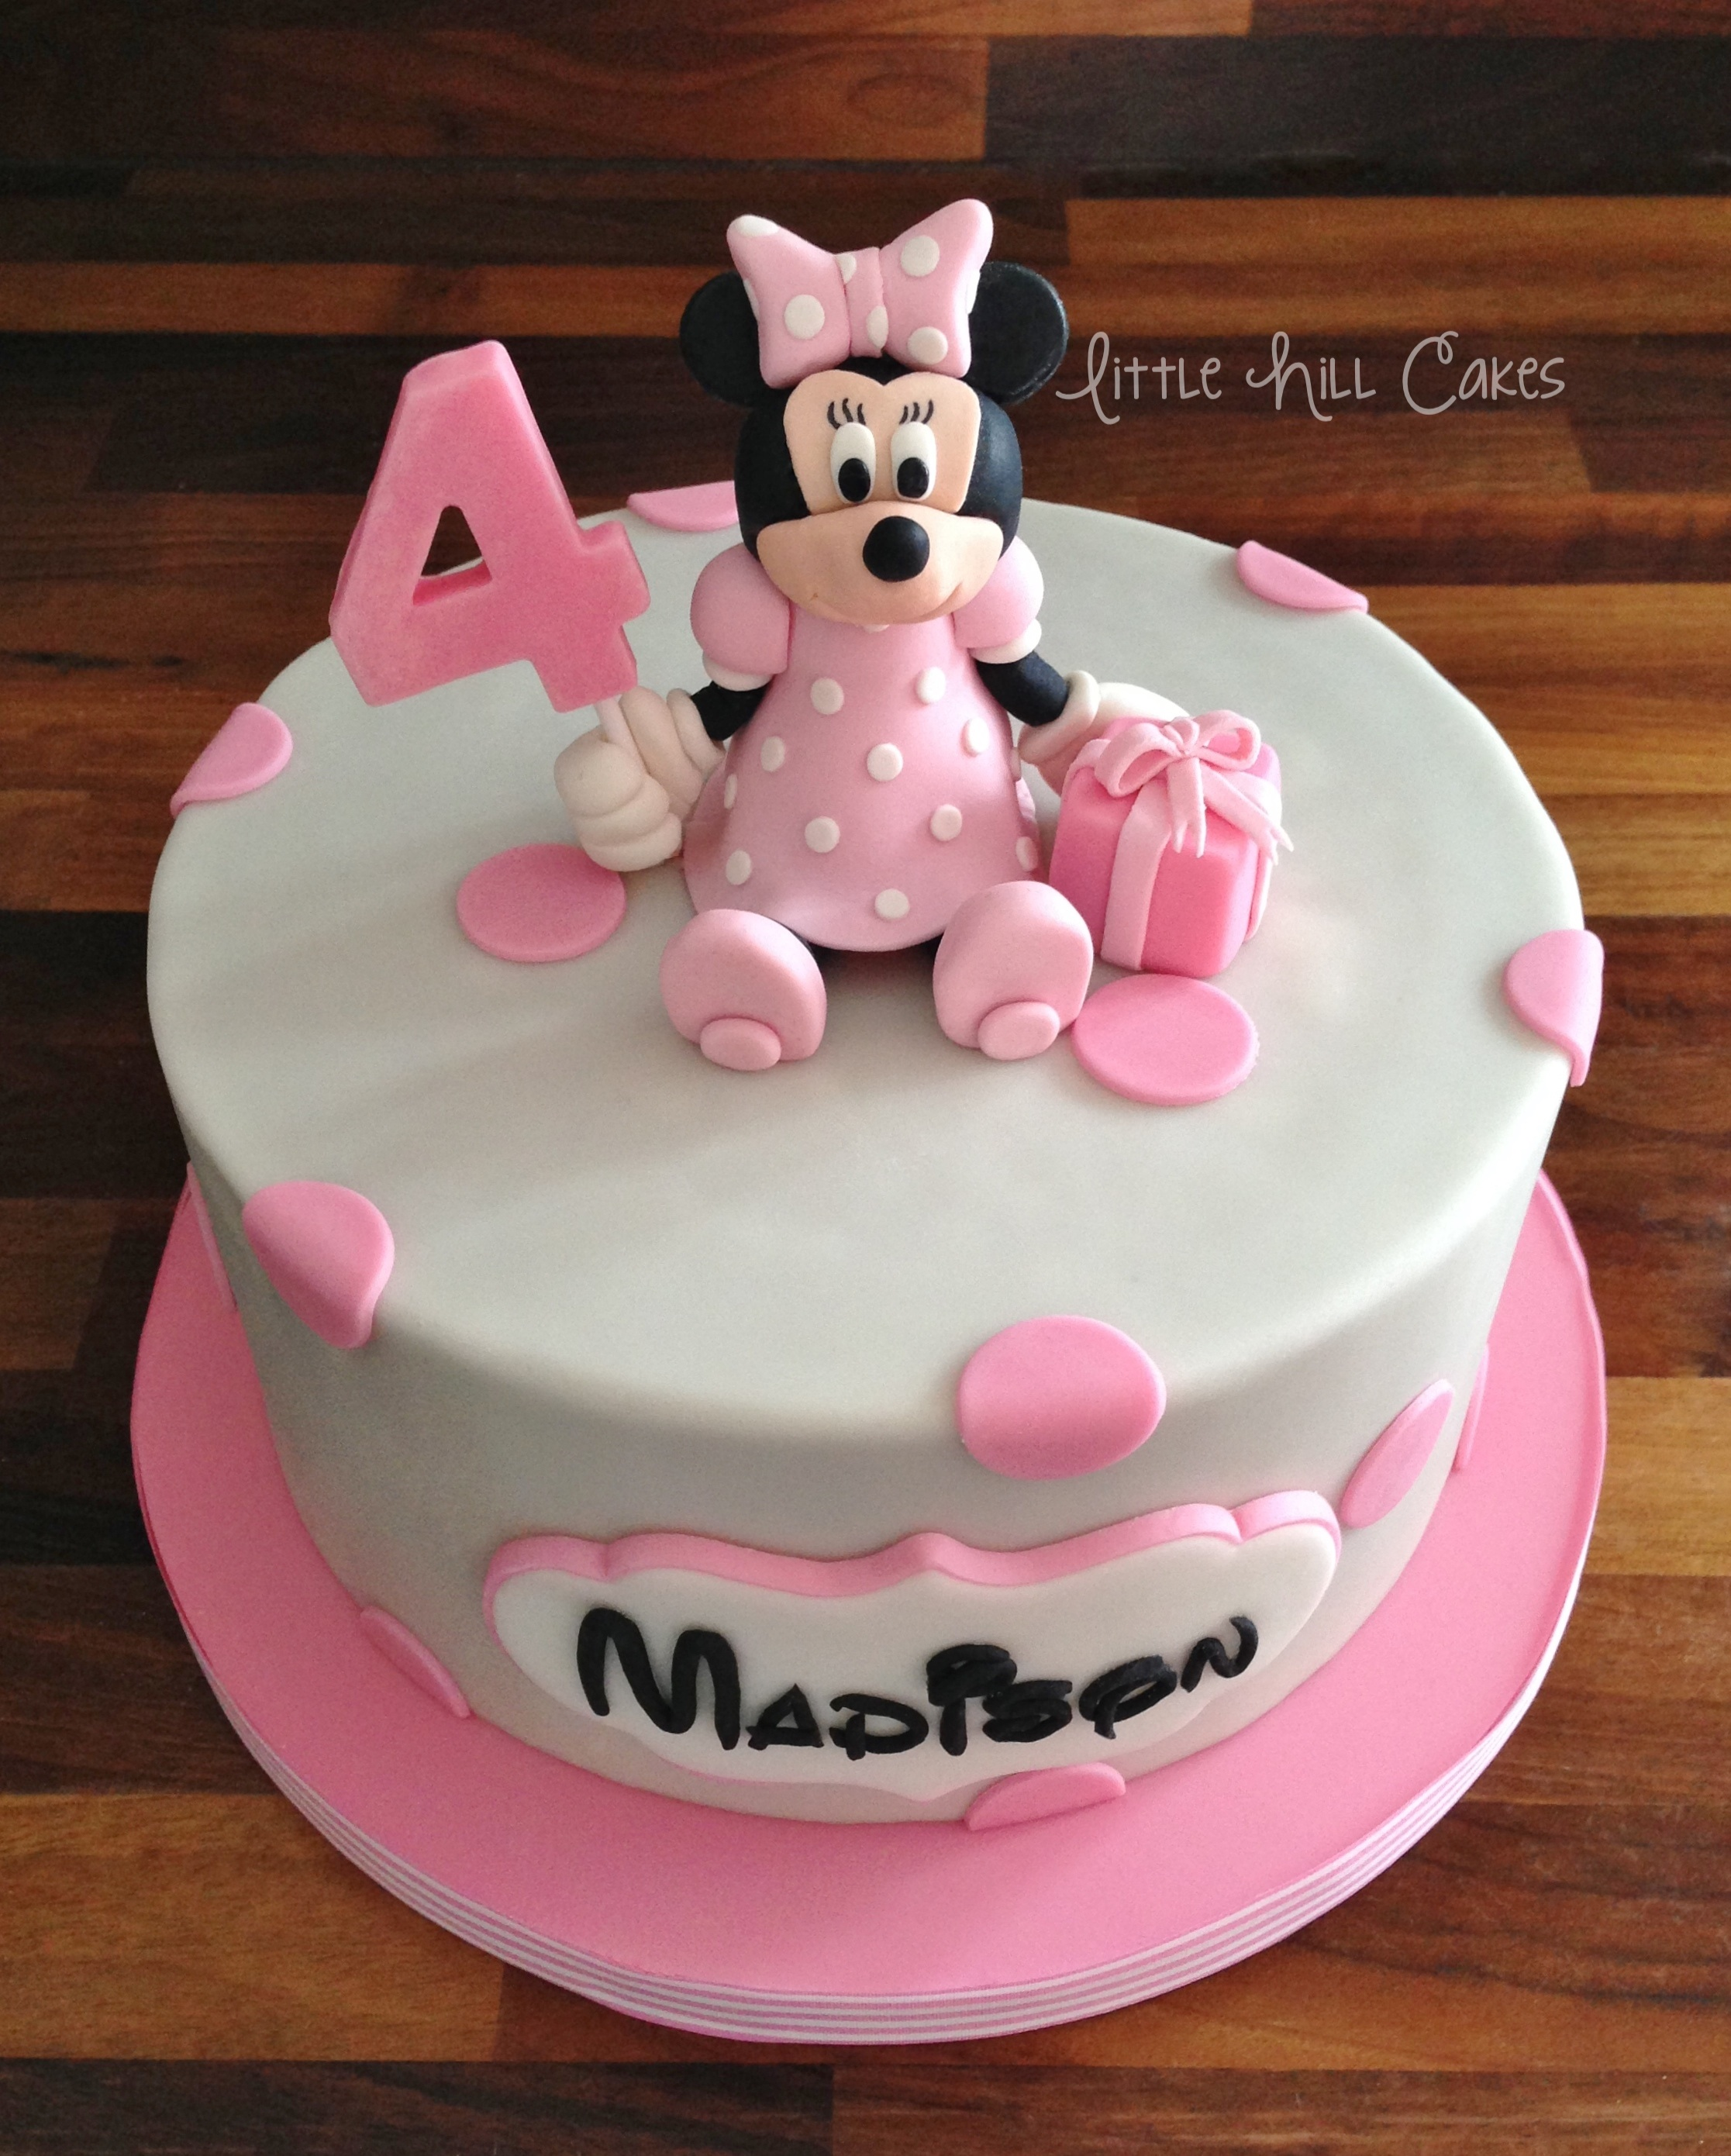 Minnie Mouse Birthday Cake Little Hill Cakes